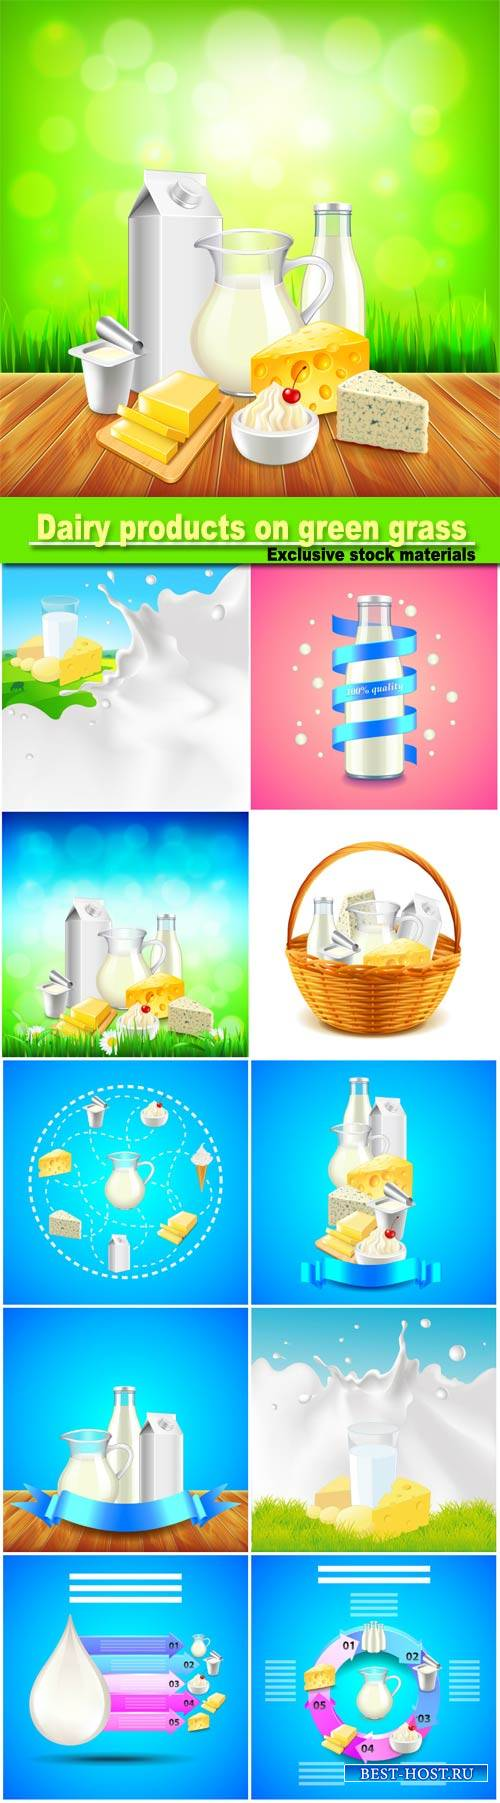 Dairy products on green grass, blue sky background vector